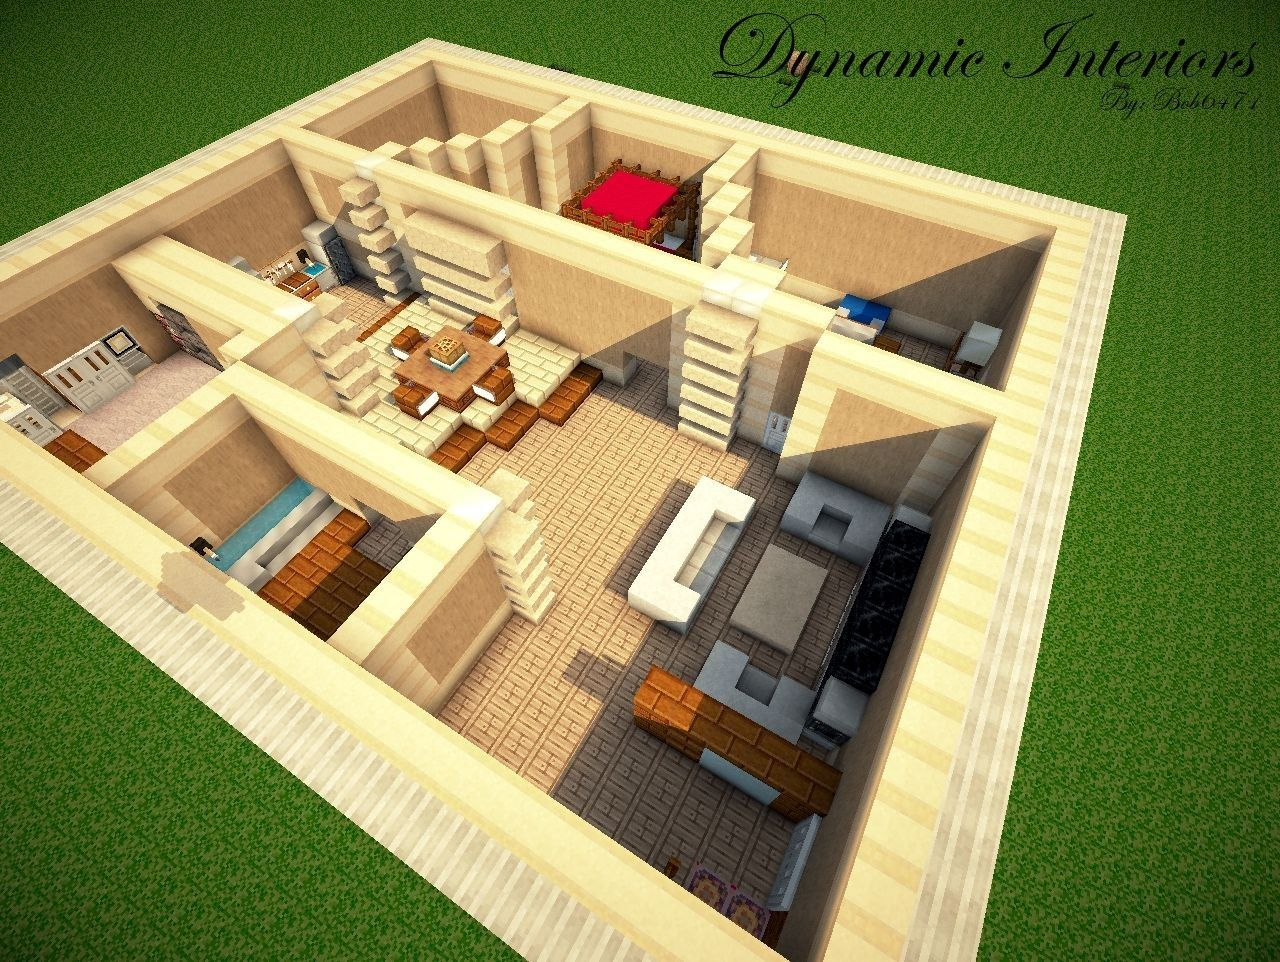 Good Layout Plan For A Rectangular House Minecraft Modern Minecraft House Plans Minecraft House Designs